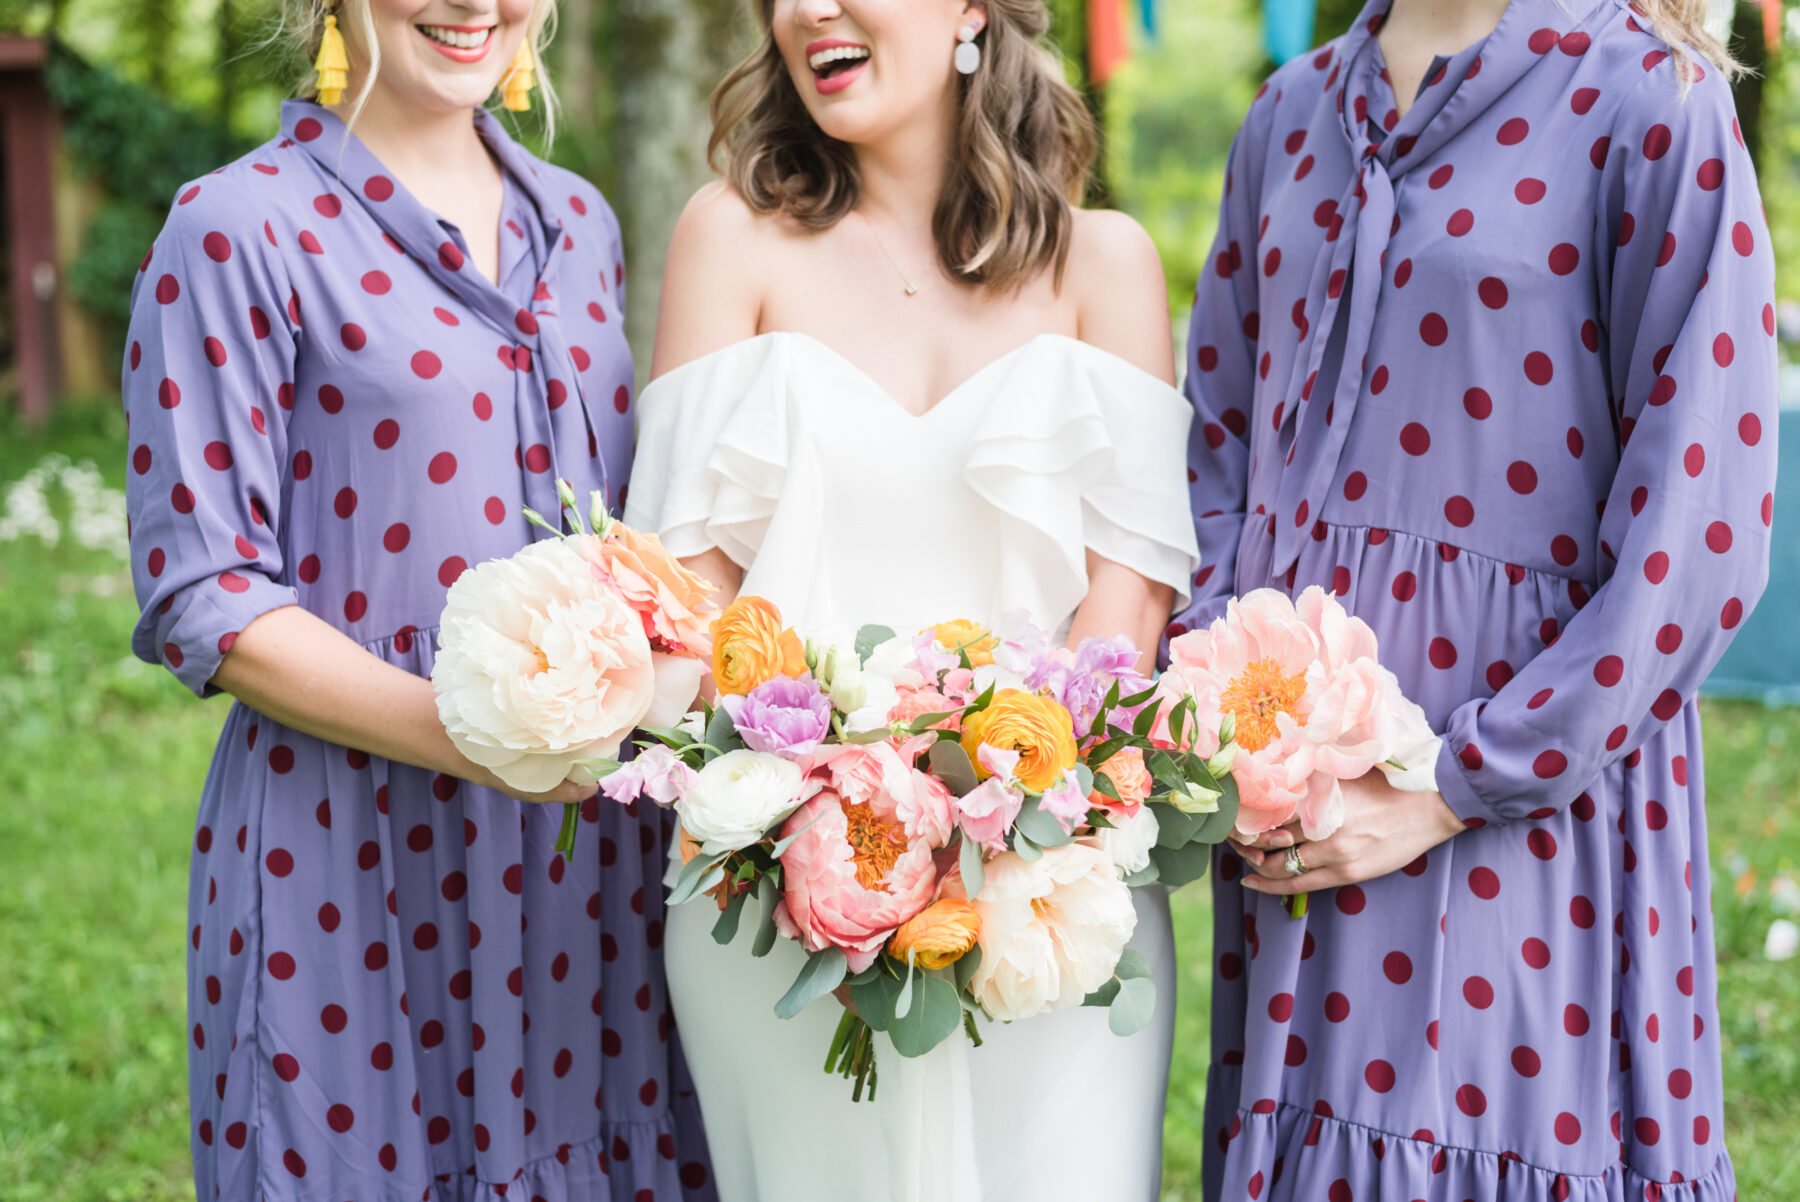 Purple and red polka dotted bridesmaid dresses